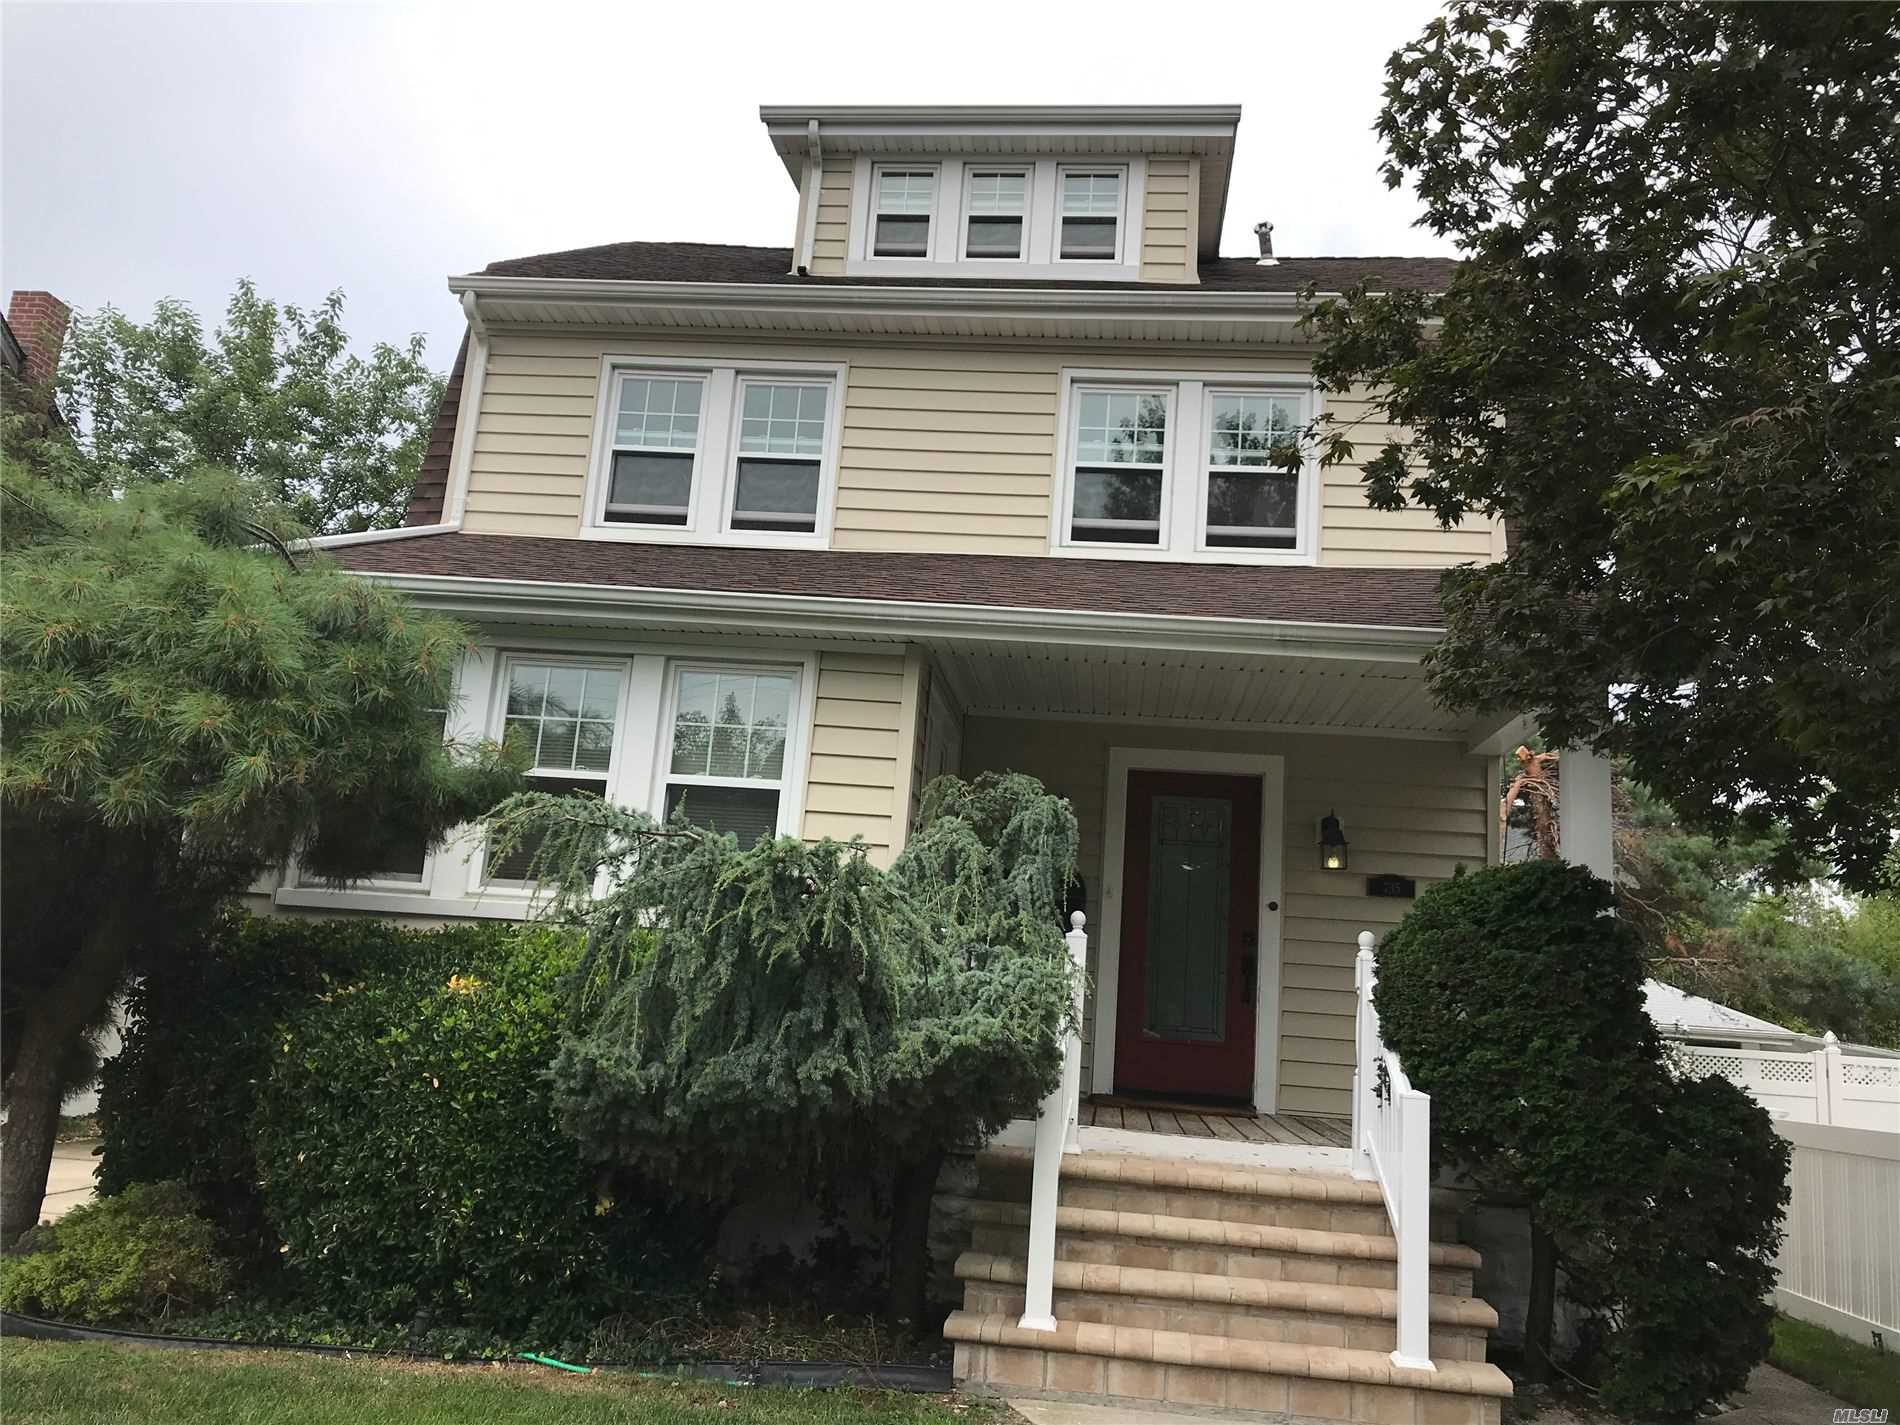 Updated 2nd floor apartment with 2 bedrooms eat in kitchen and full bath. Living room/den on 3rd floor.